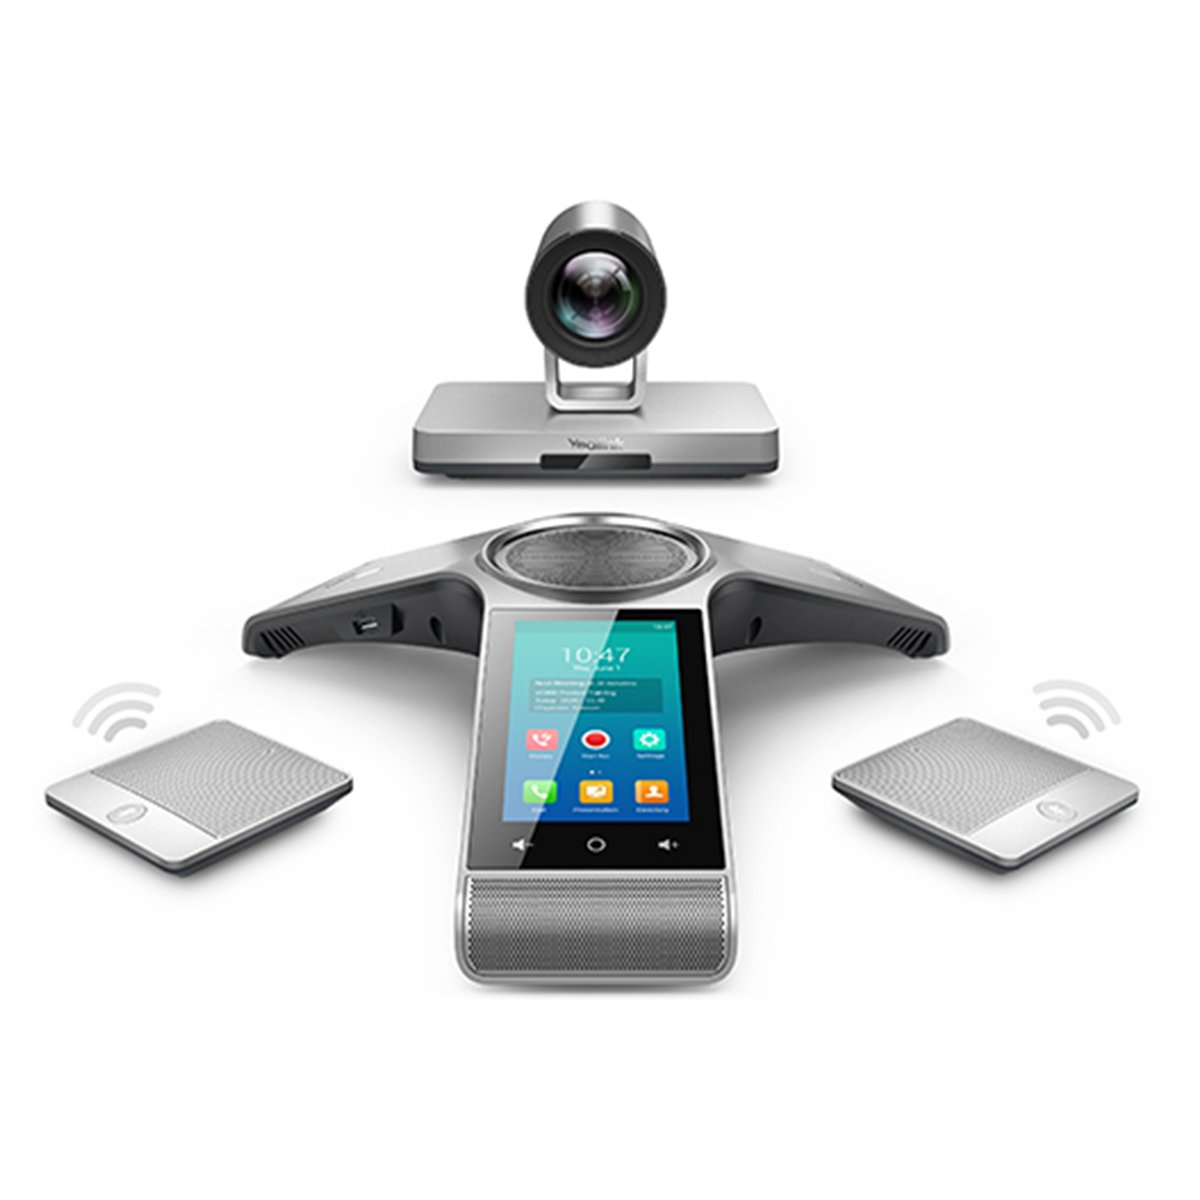 Yealink Video Conferencing System VC800